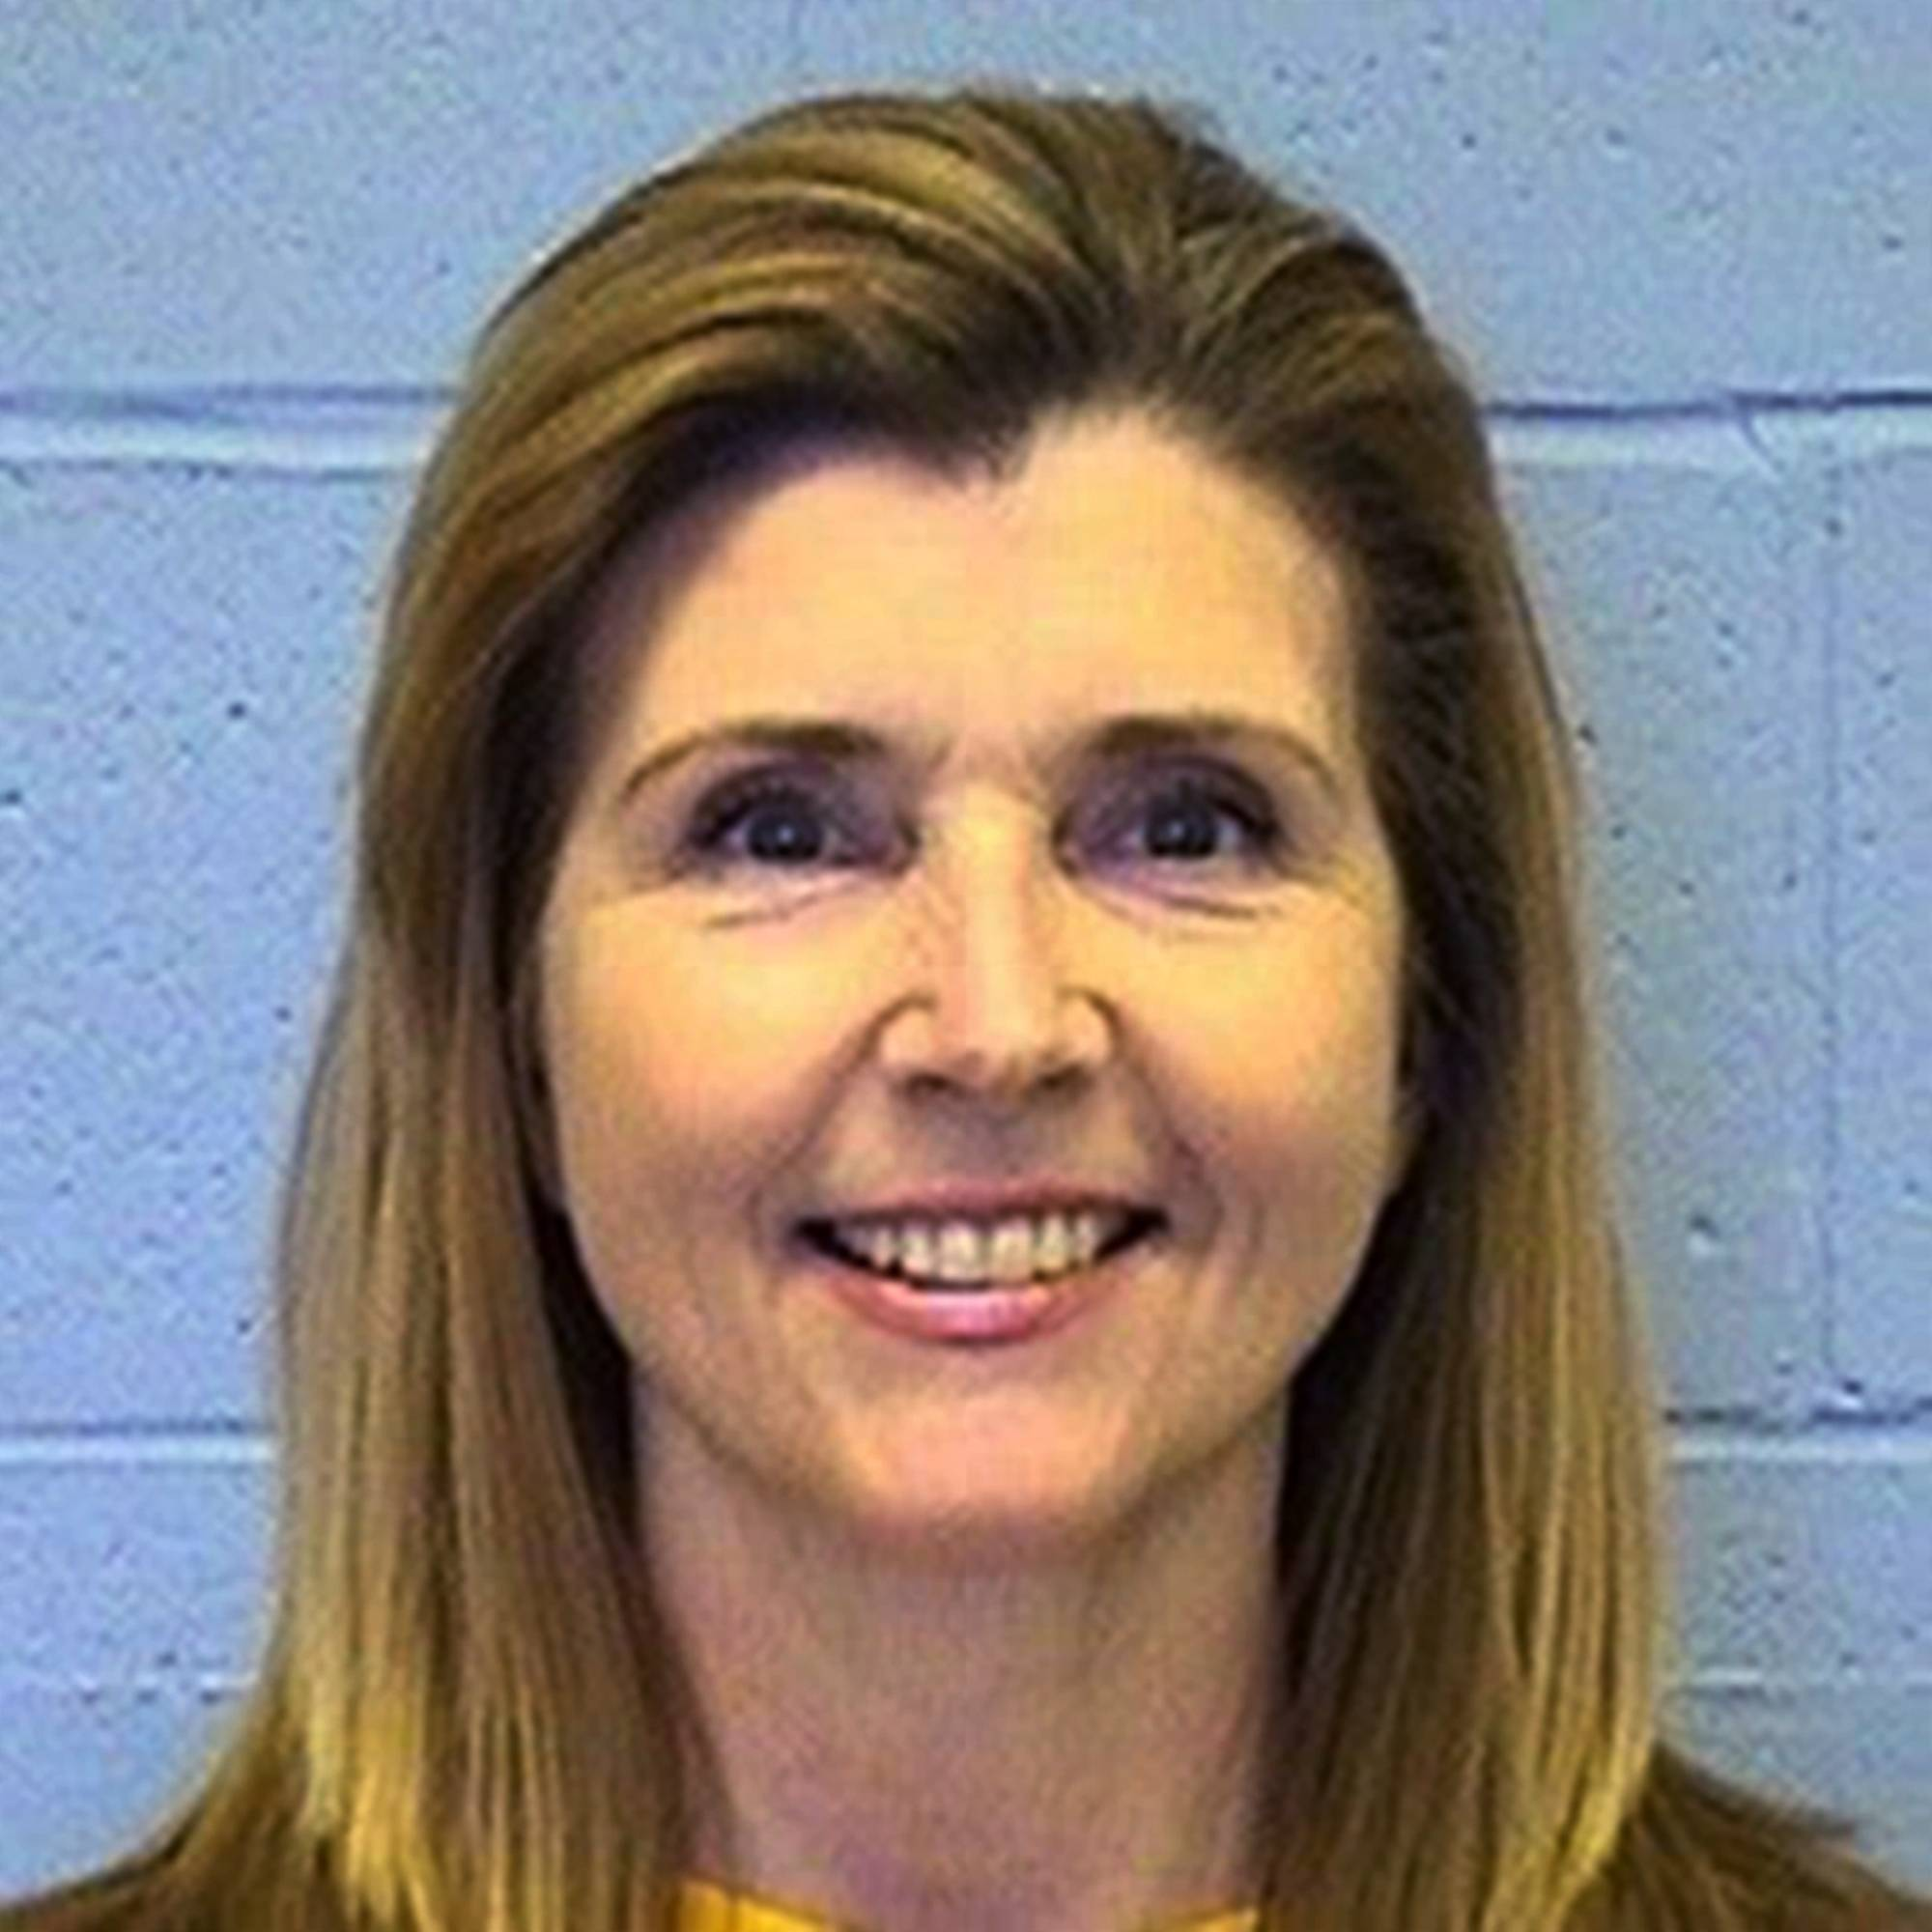 Nancy Rish has been in prison for 27 years.